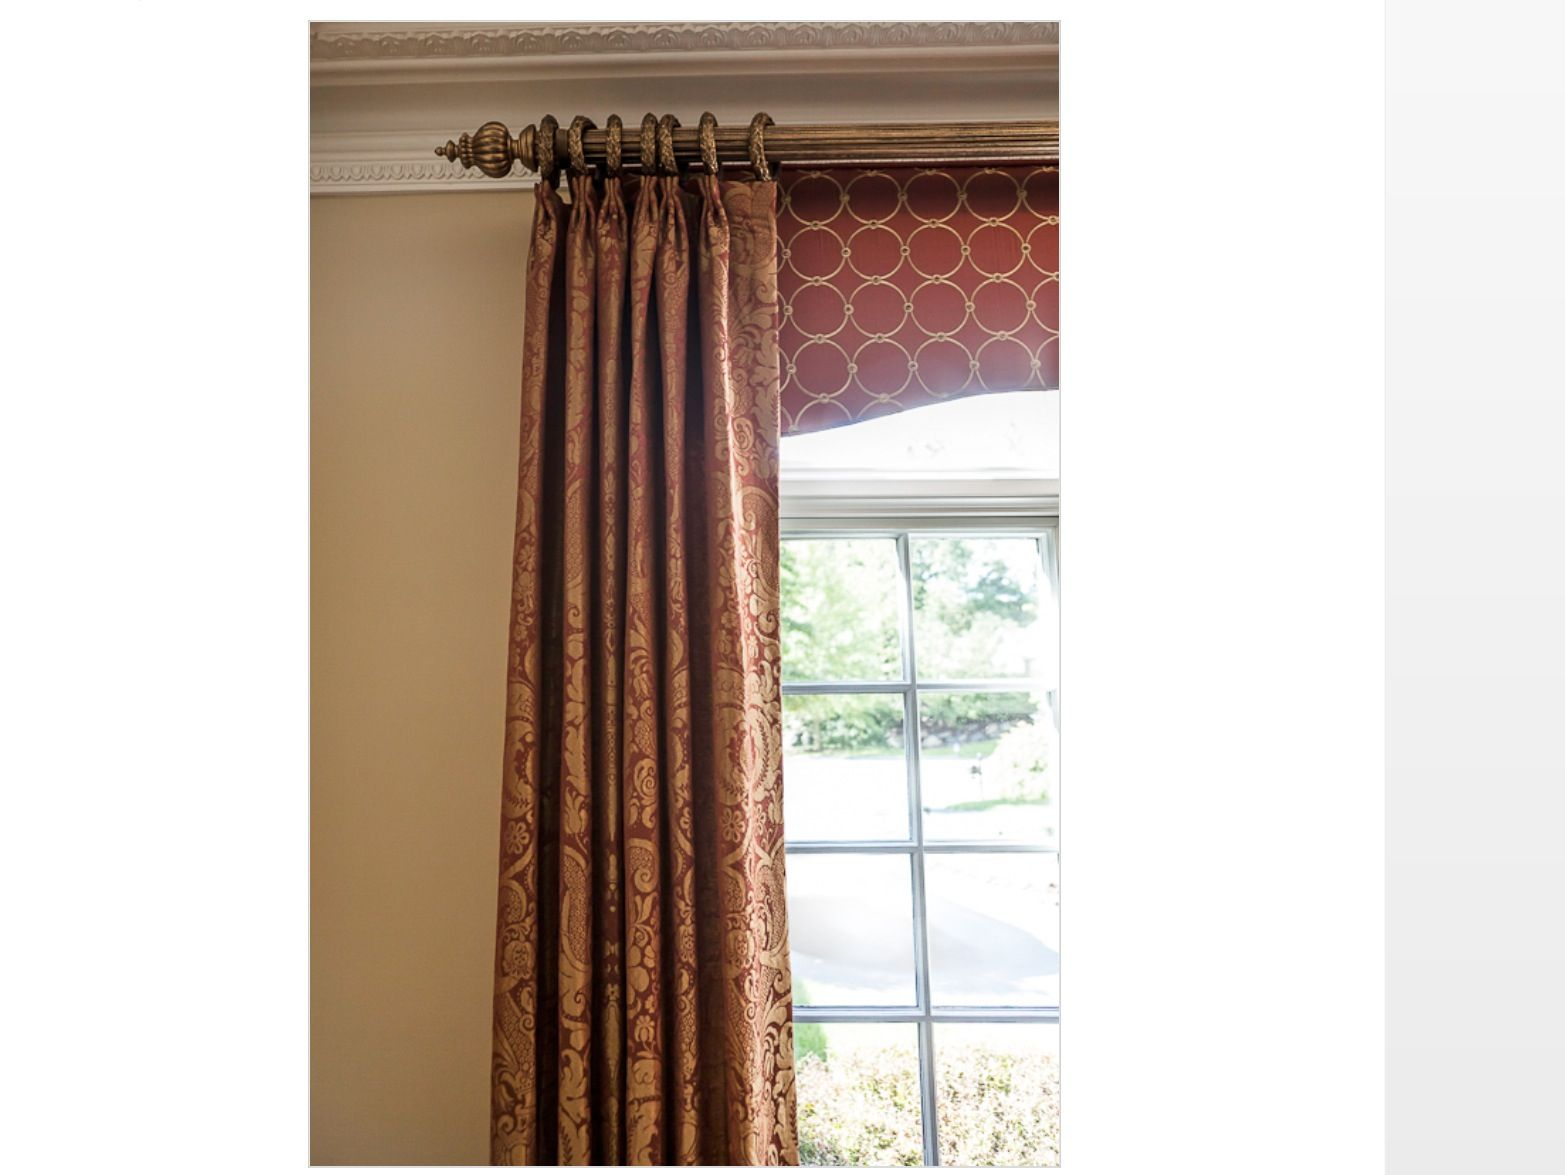 Shower Curtain With Cornice - Cornice under panel on rod with rings